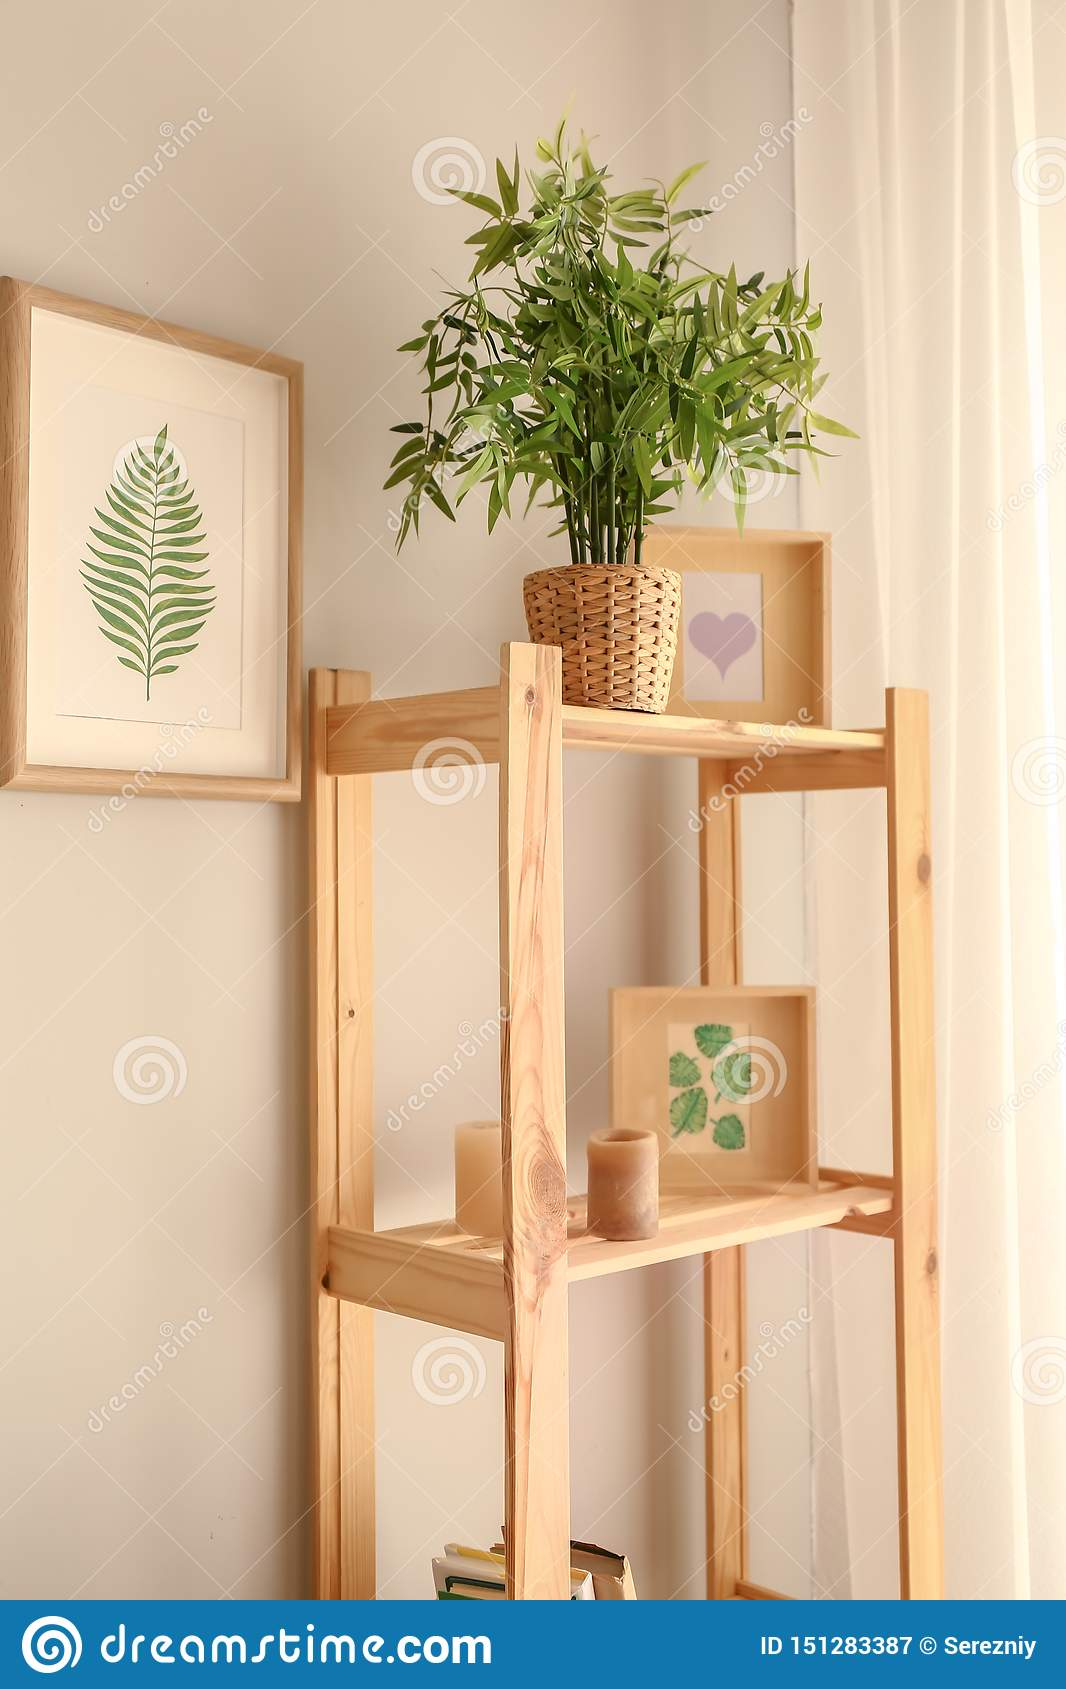 Shelving Unit With Green Plant And Decor In Room Stock Image Image Of Estate Ecological 151283387